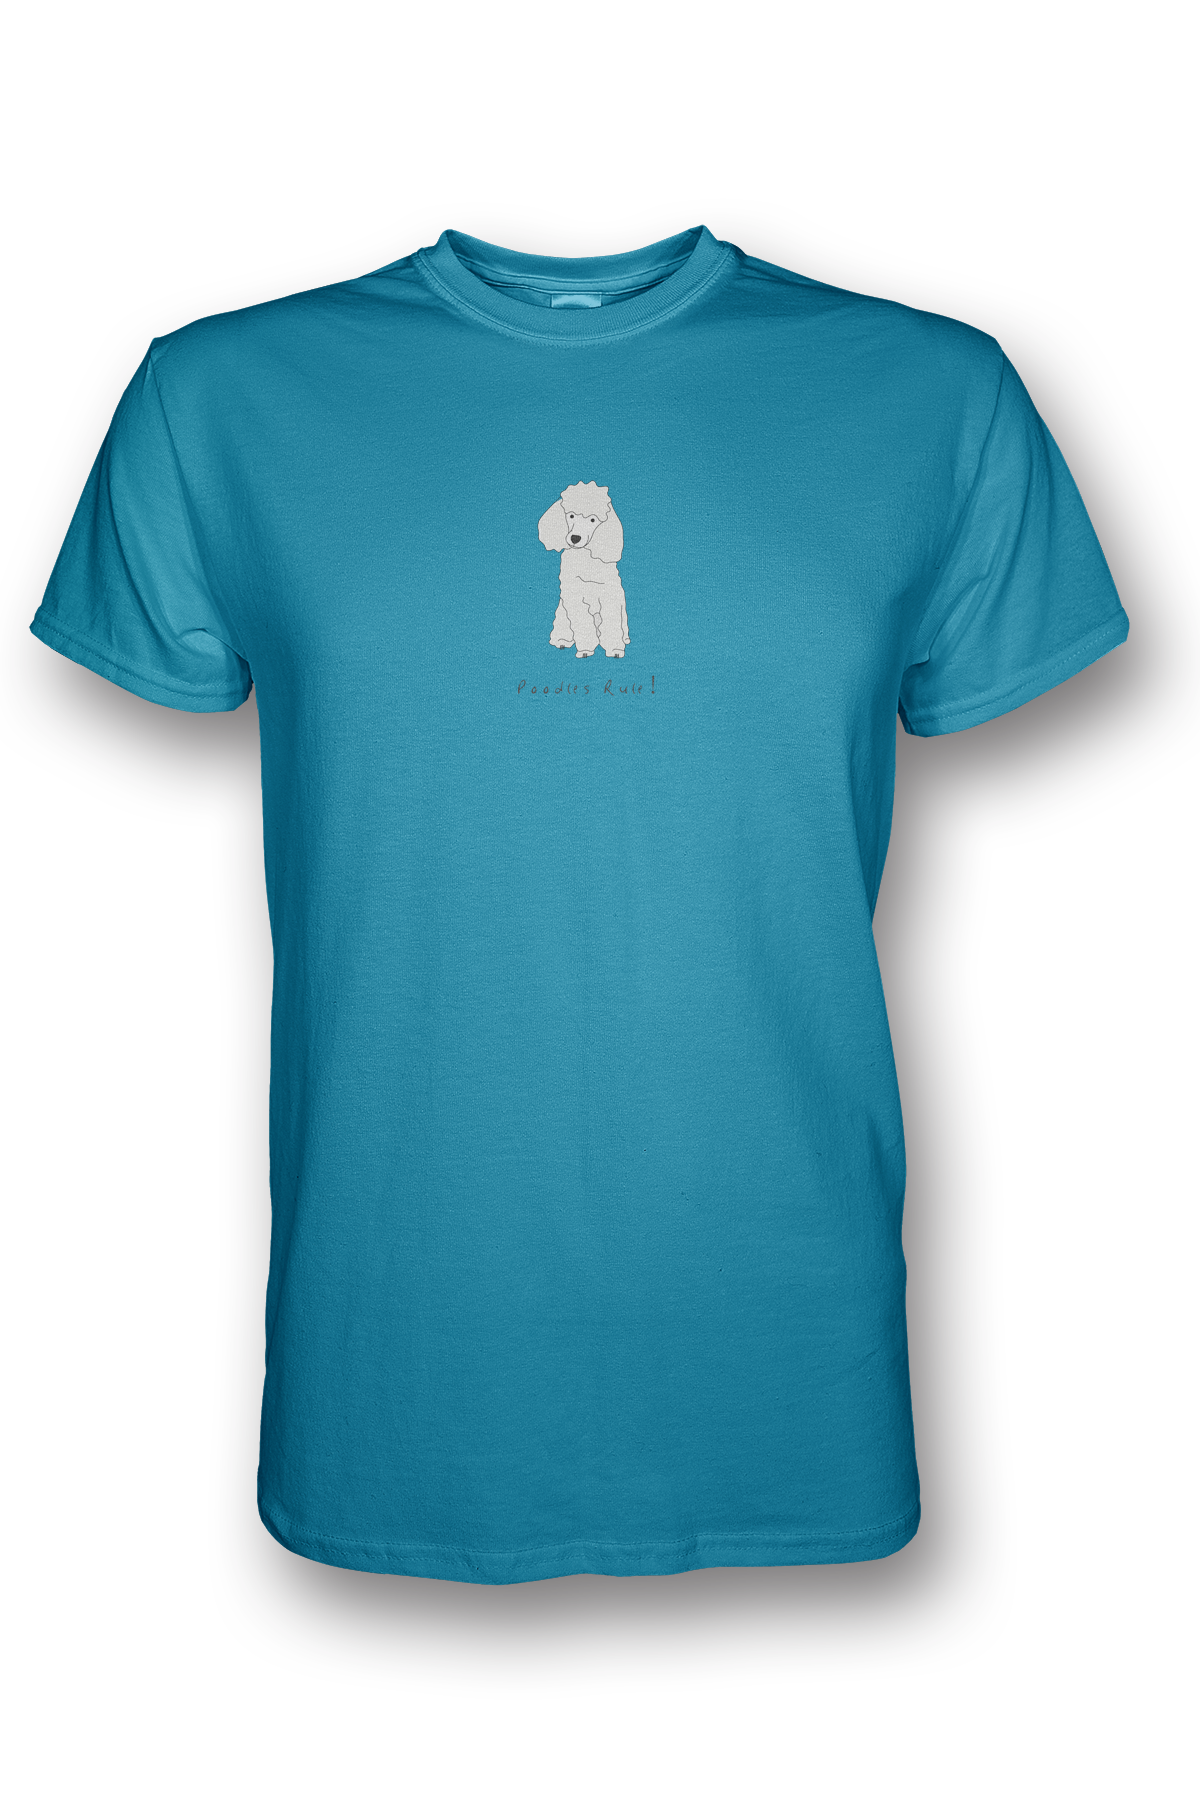 Mens Crew Neck T-Shirt - Poodles Rule! Caribbean Blue